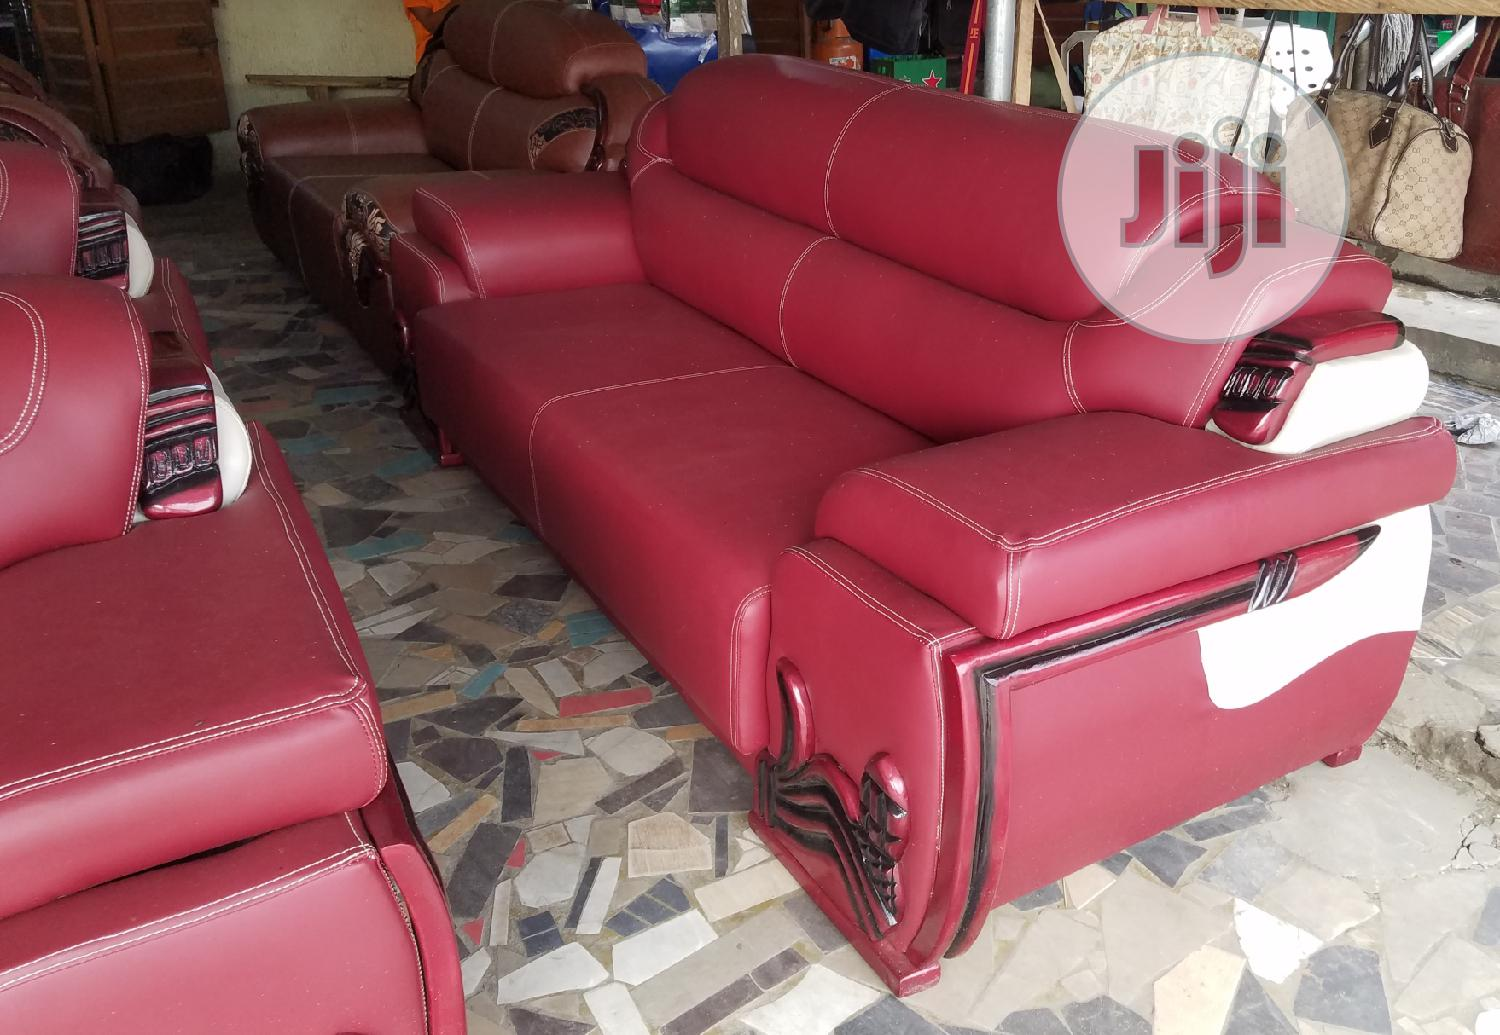 Latest High Quality Sofa | Furniture for sale in Ojo, Lagos State, Nigeria